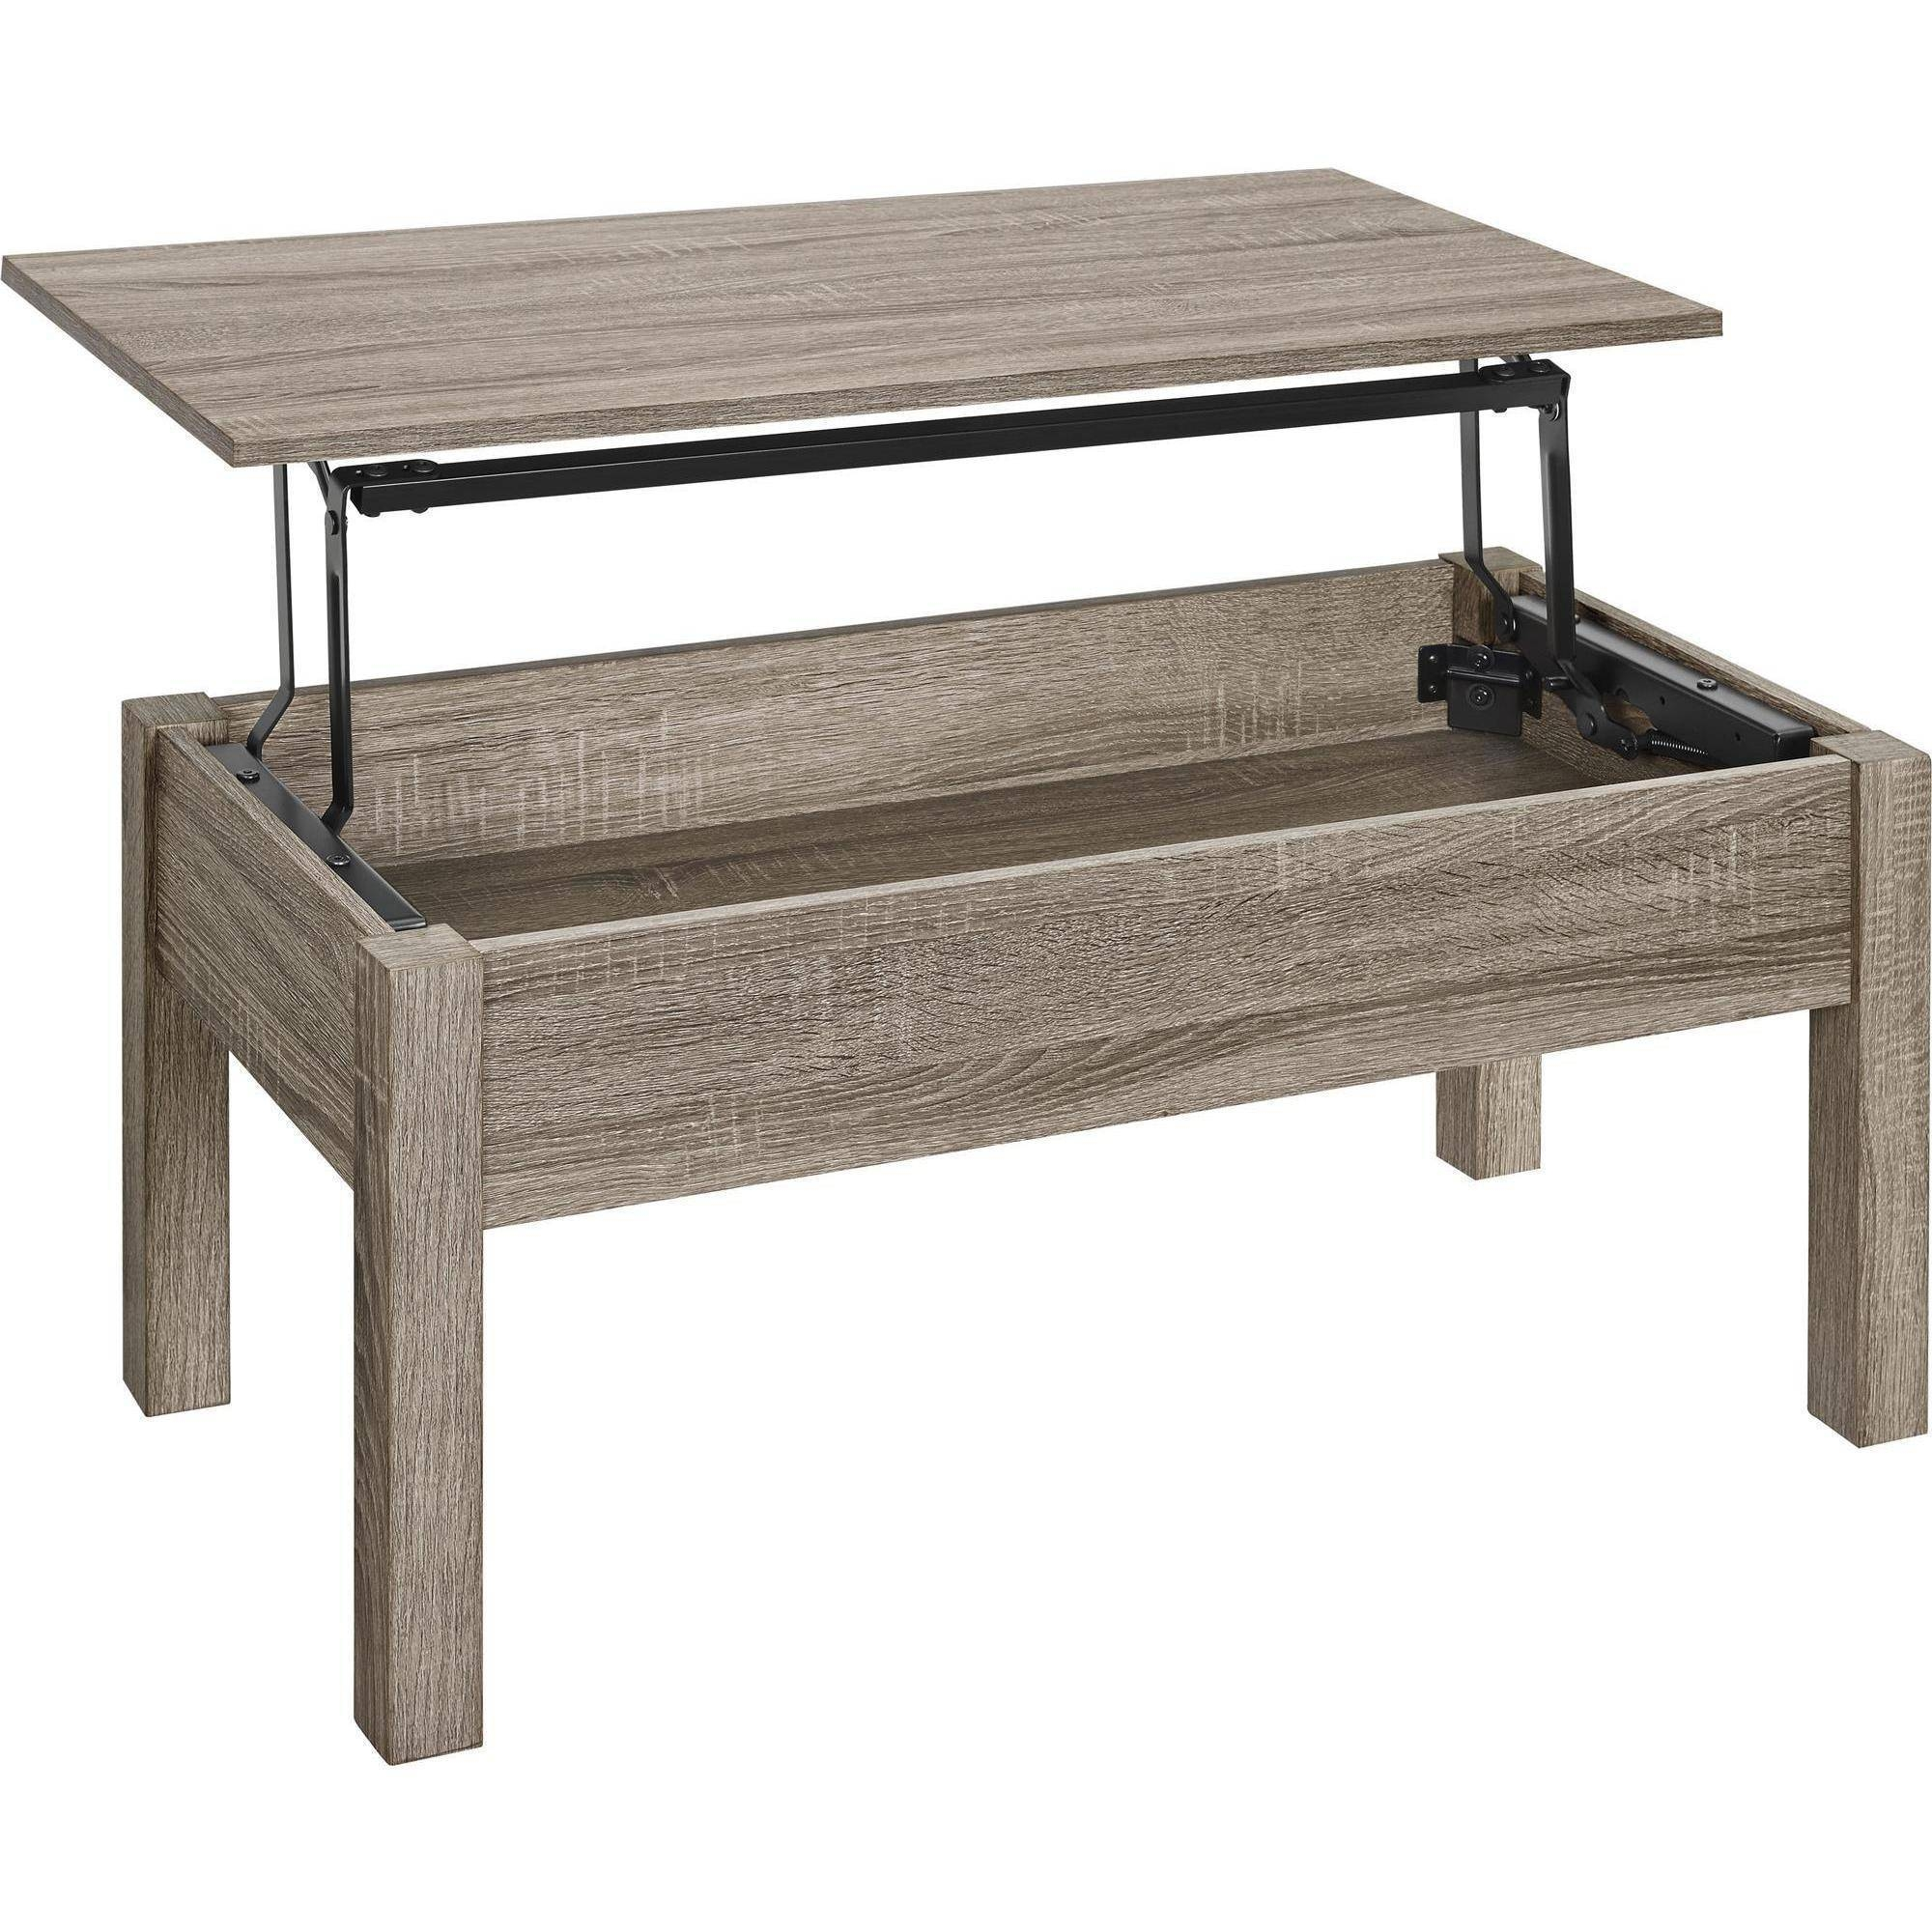 Mainstays Lift-Top Coffee Table, Multiple Colors - Walmart throughout Coffee Tables Top Lifts Up (Image 17 of 30)